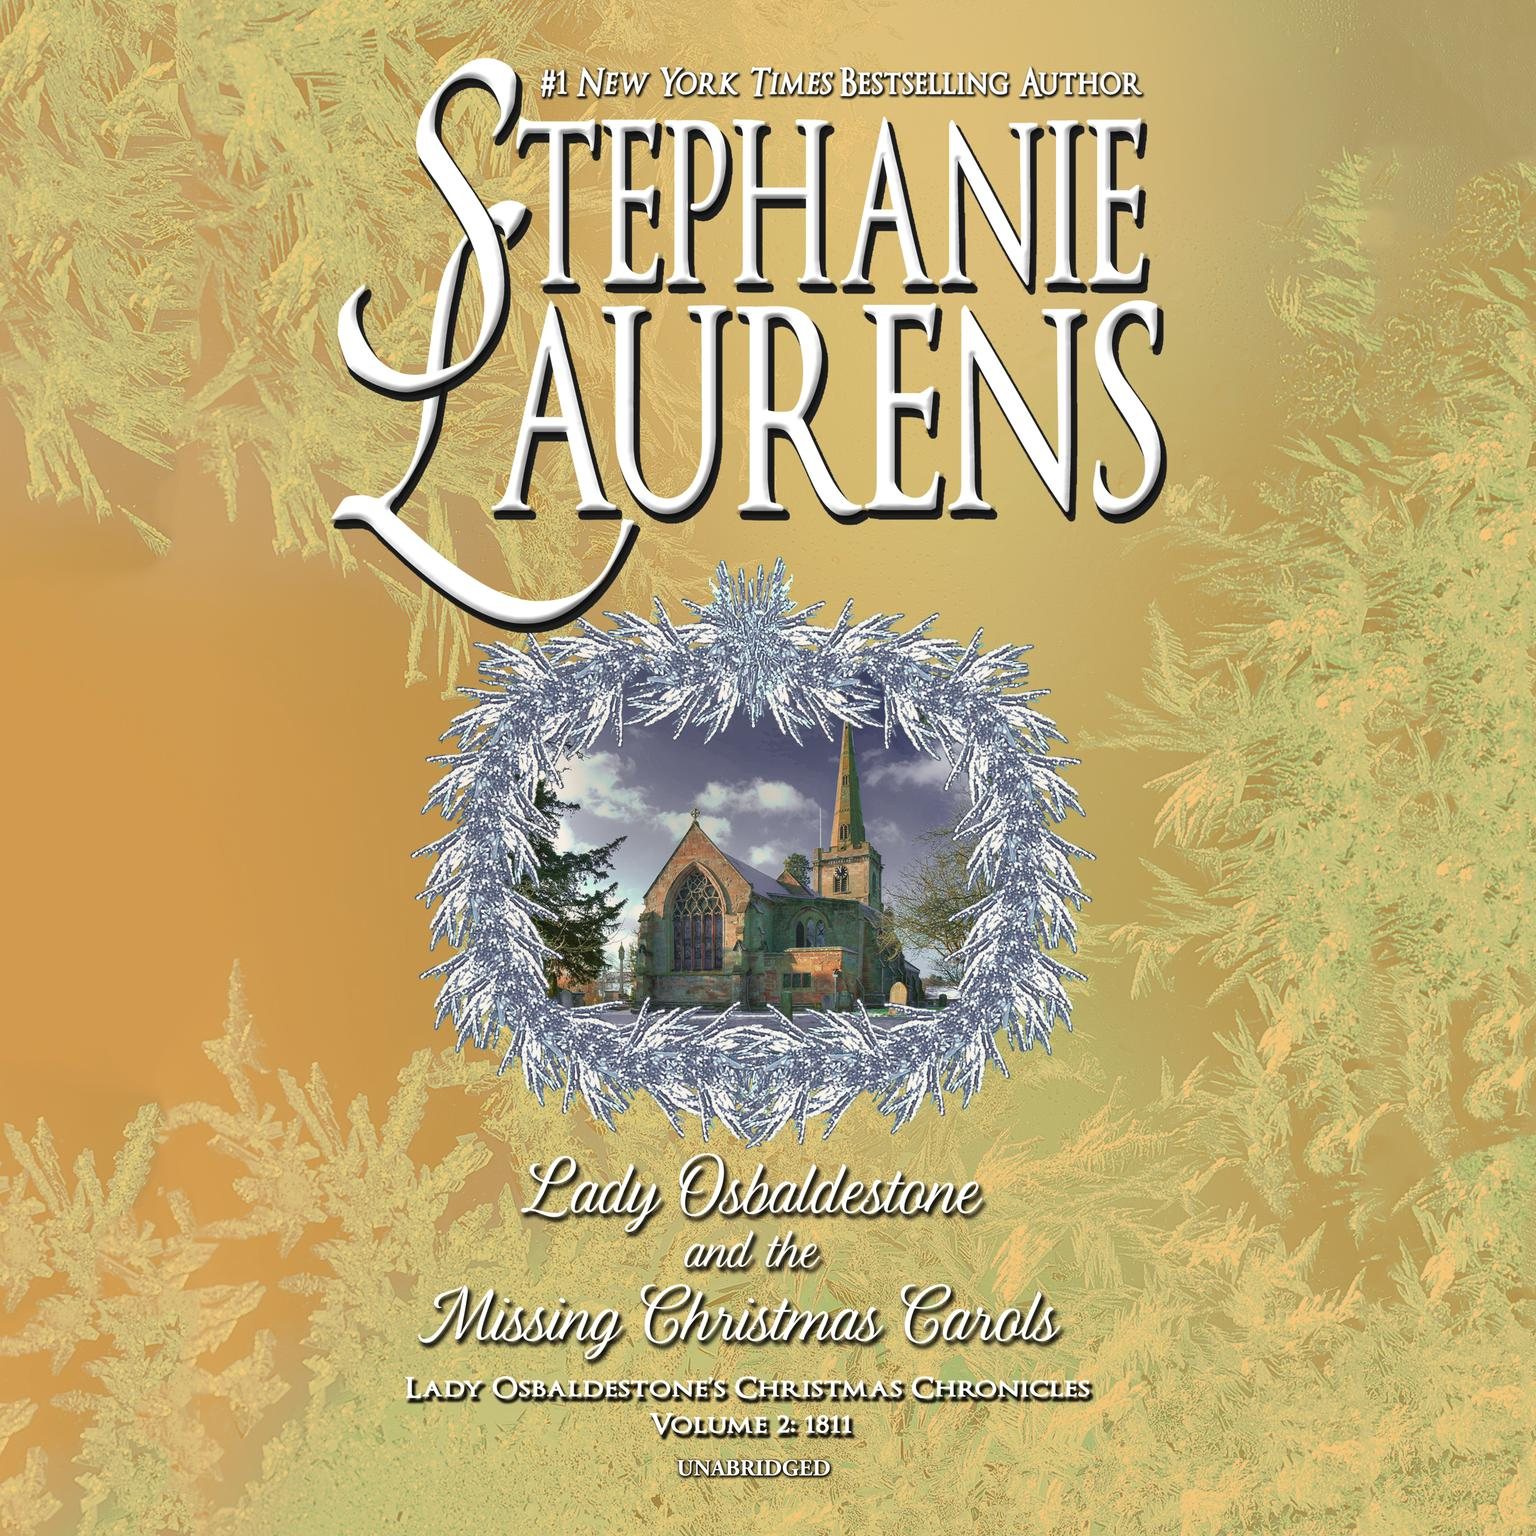 Printable Lady Osbaldestone and the Missing Christmas Carols: Lady Osbaldestone's Christmas Chronicles, Volume 2: 1811 Audiobook Cover Art